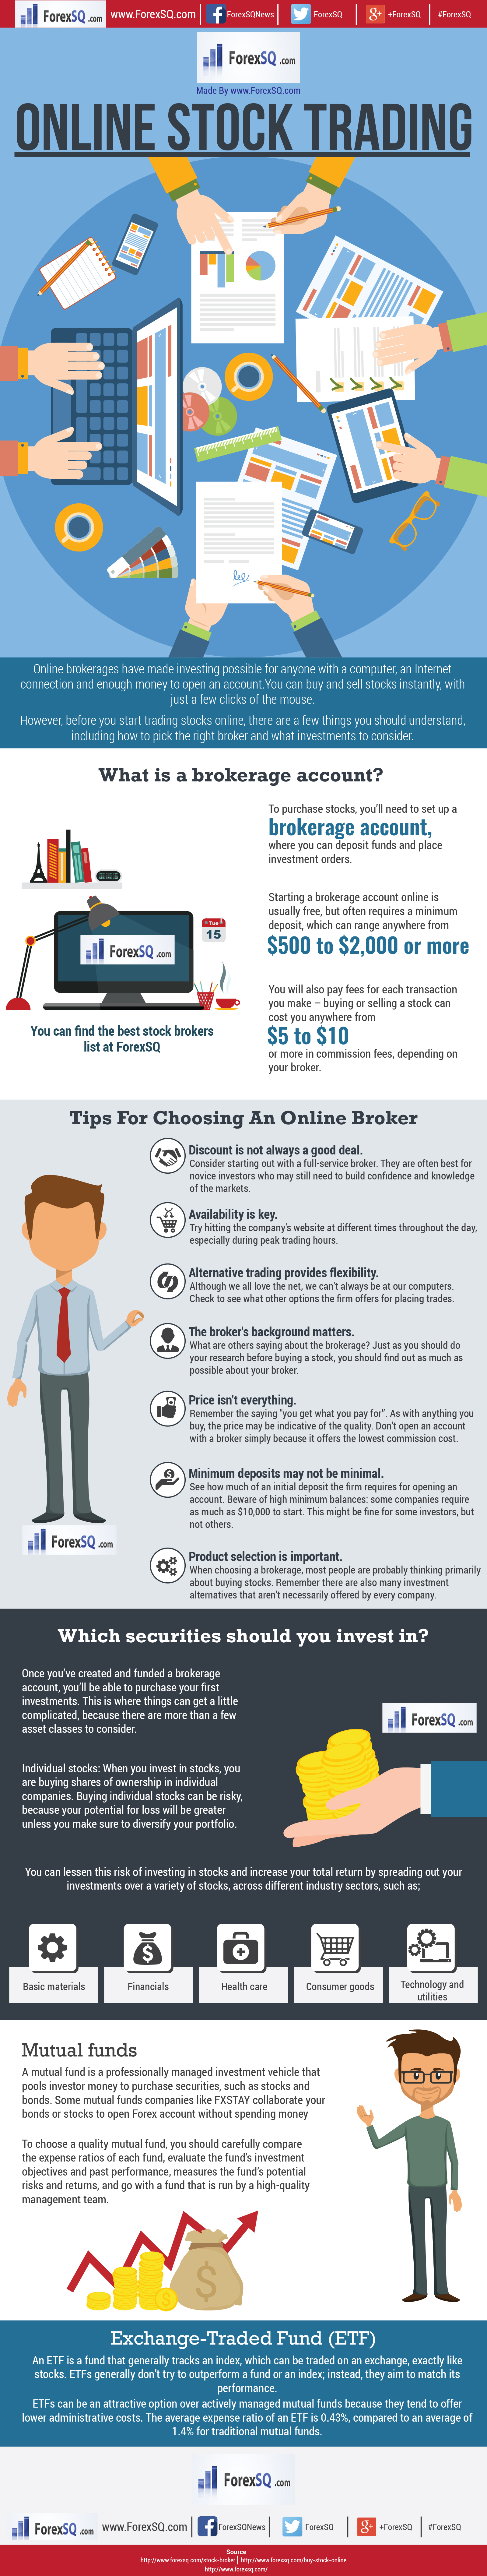 Online share broker reviews